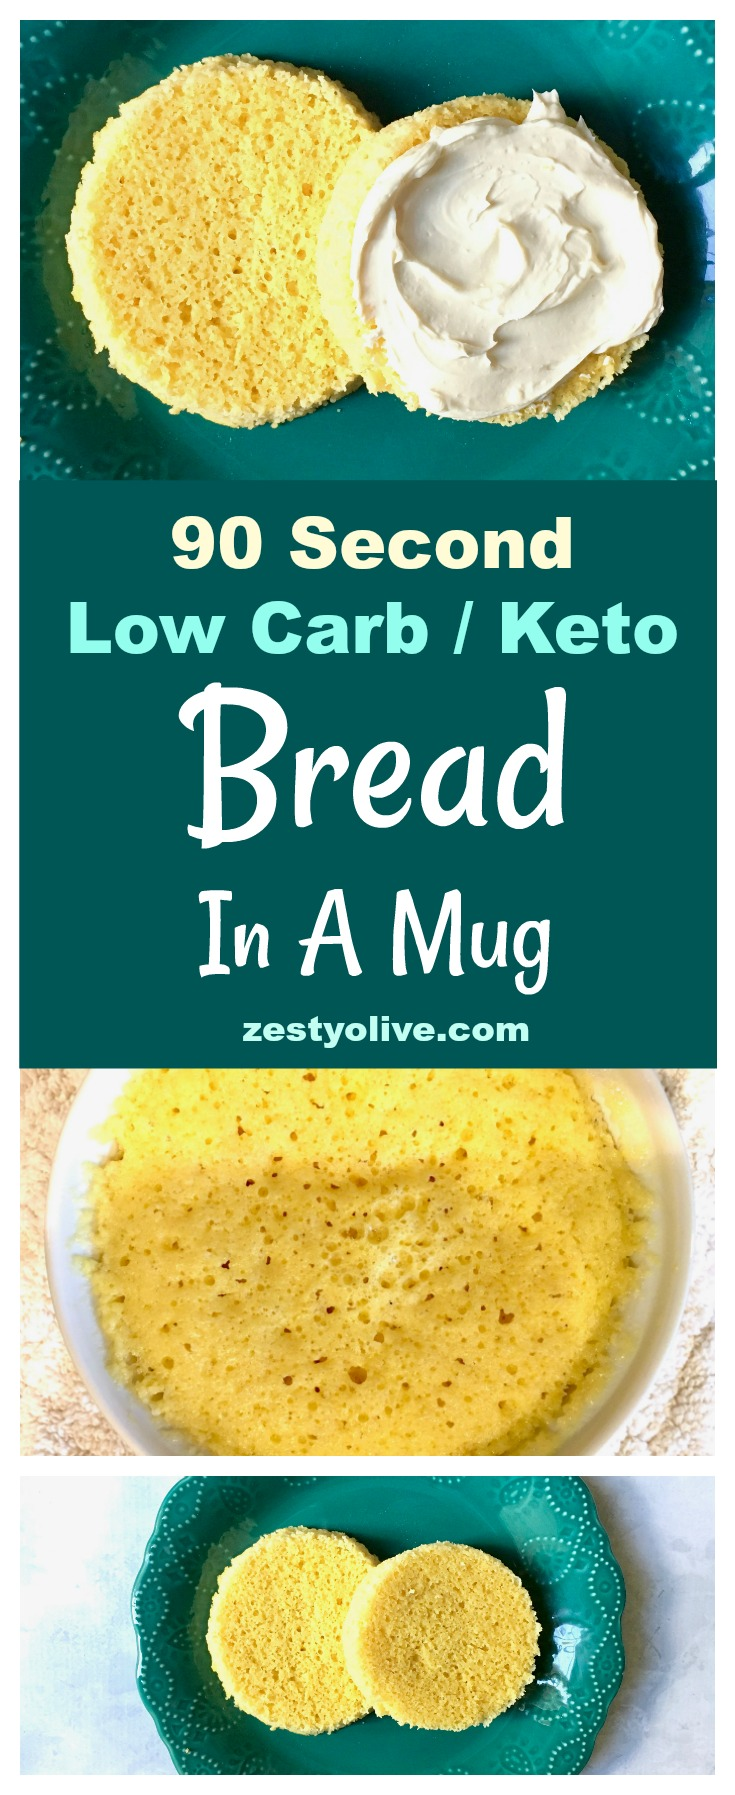 Here's the easiest recipe ever on How To Make 90-Second Keto, Low Carb, Gluten-Free Bread In A Mug. Not only is this bread healthy and quick to make, but it is easily customizable if you want to season it up with herbs or cheese.